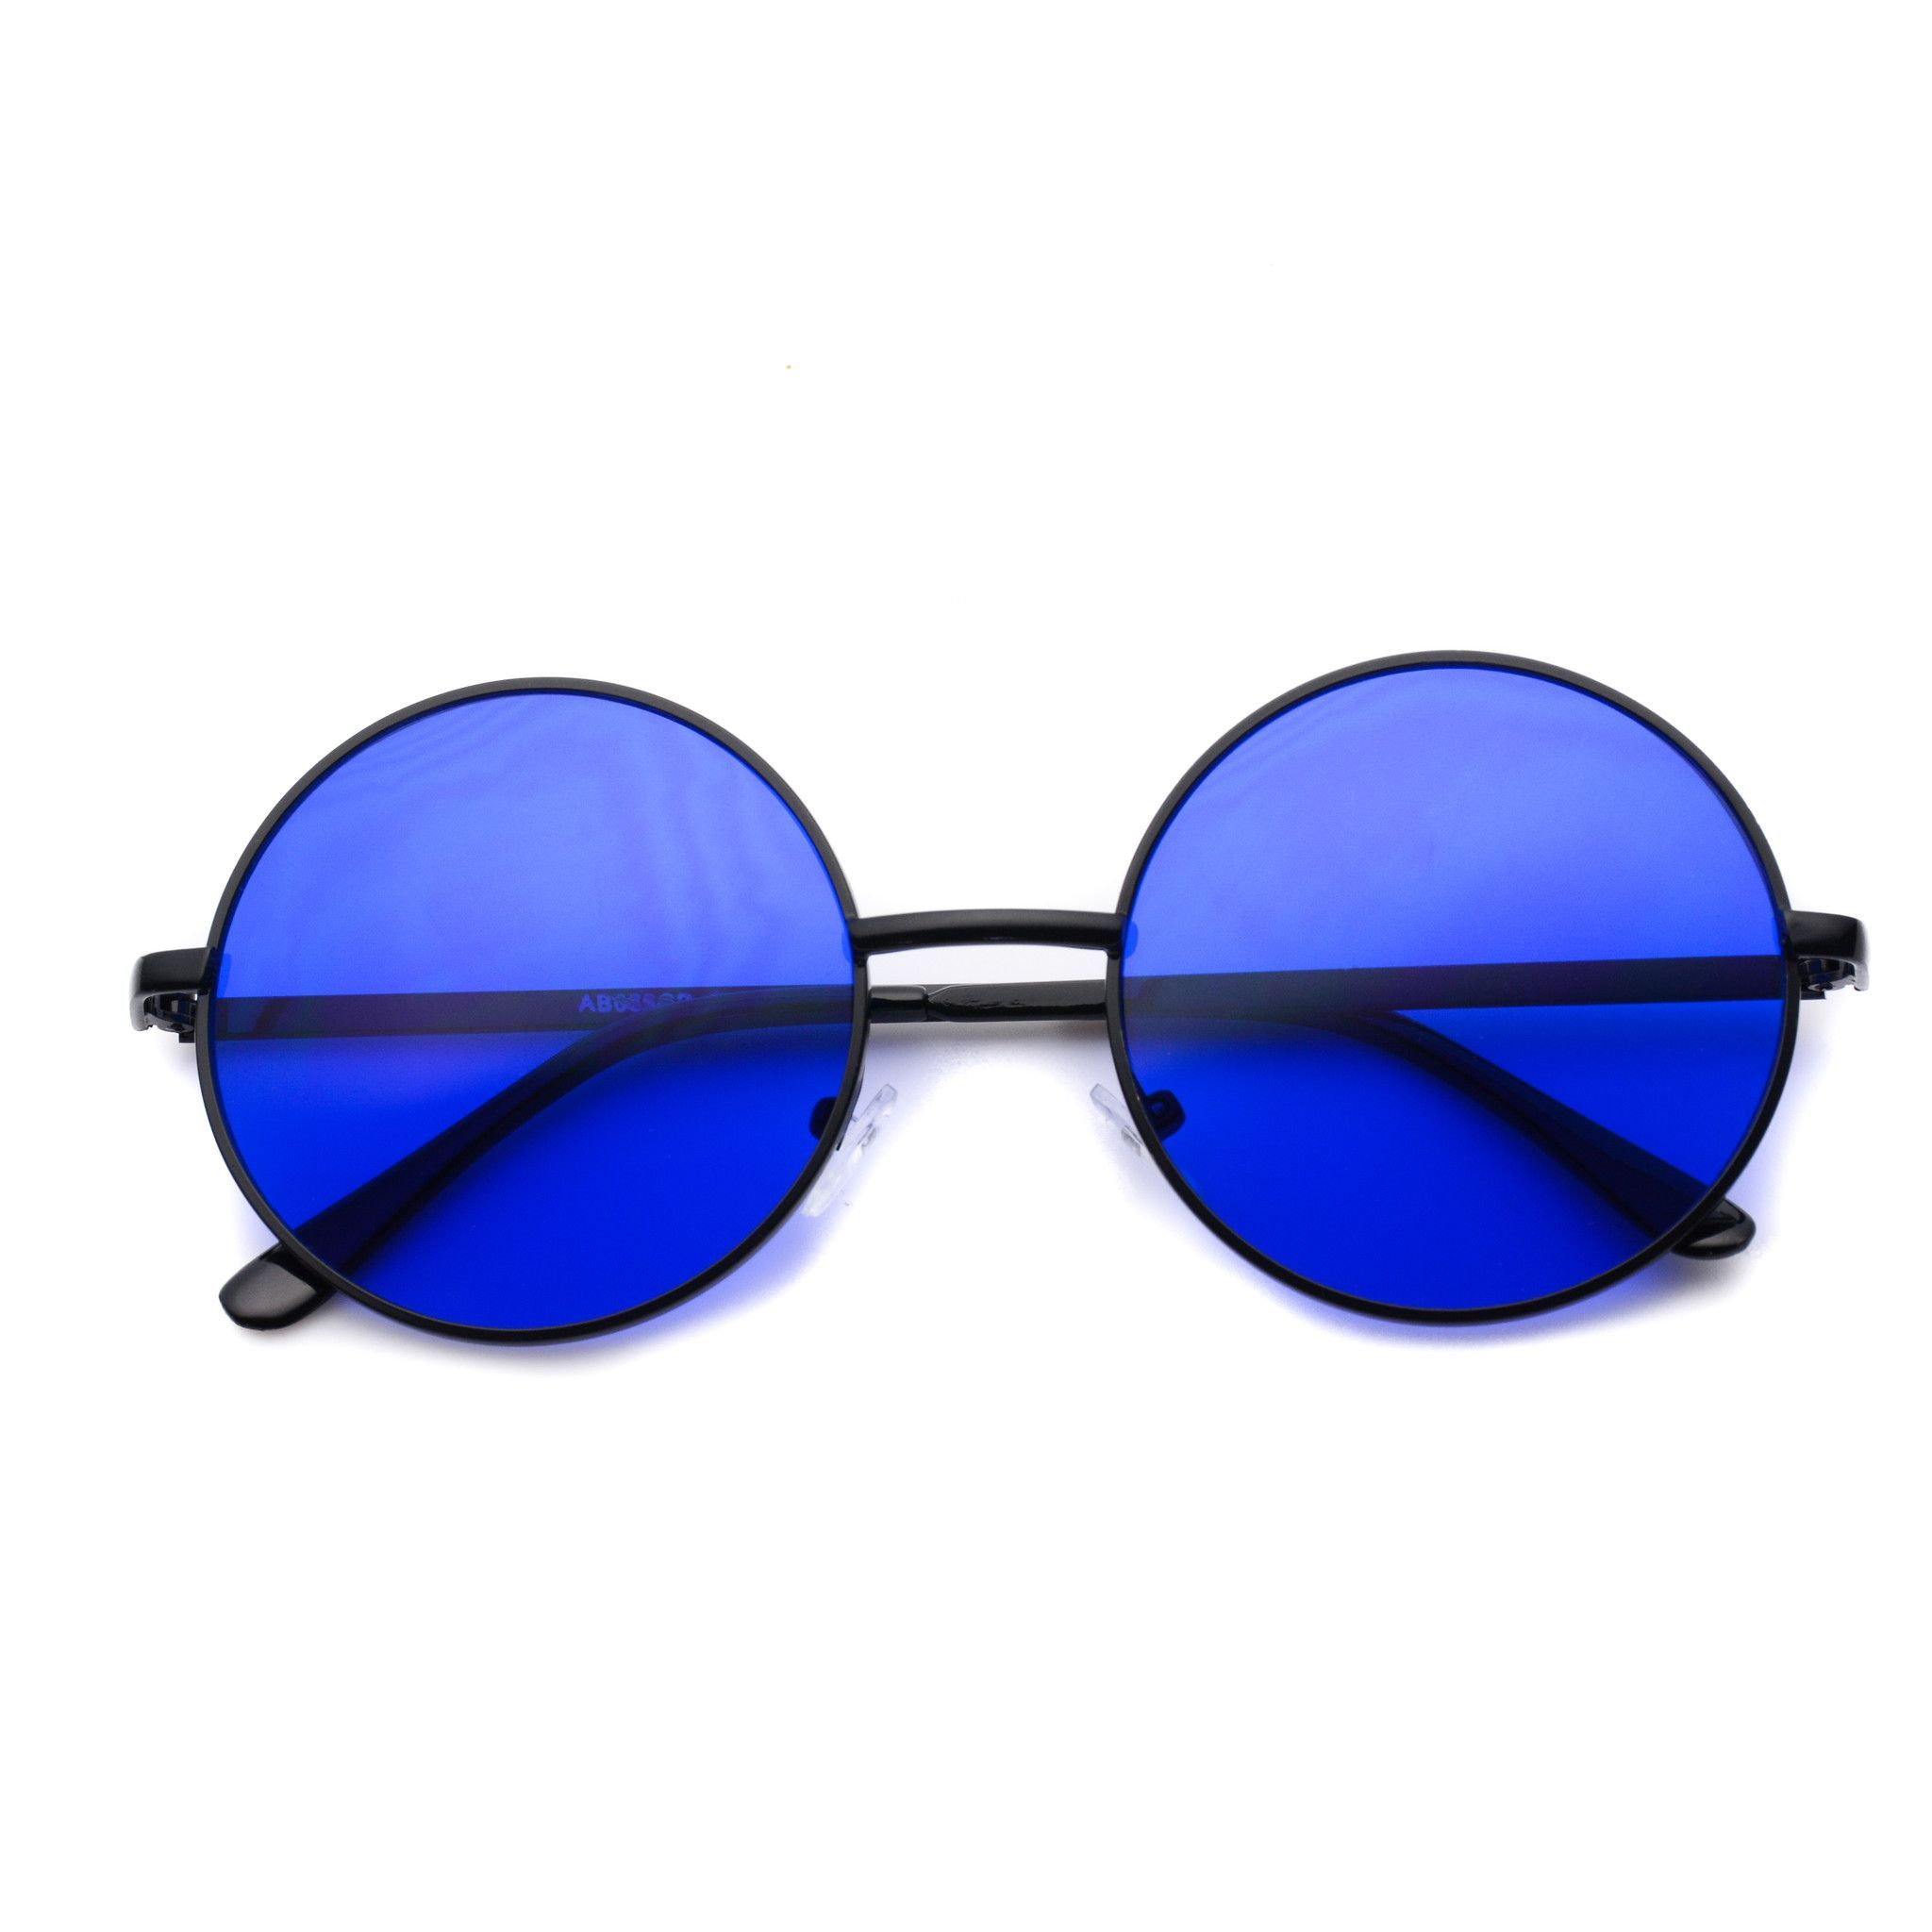 Payton Colorful Round Retro Sunglasses